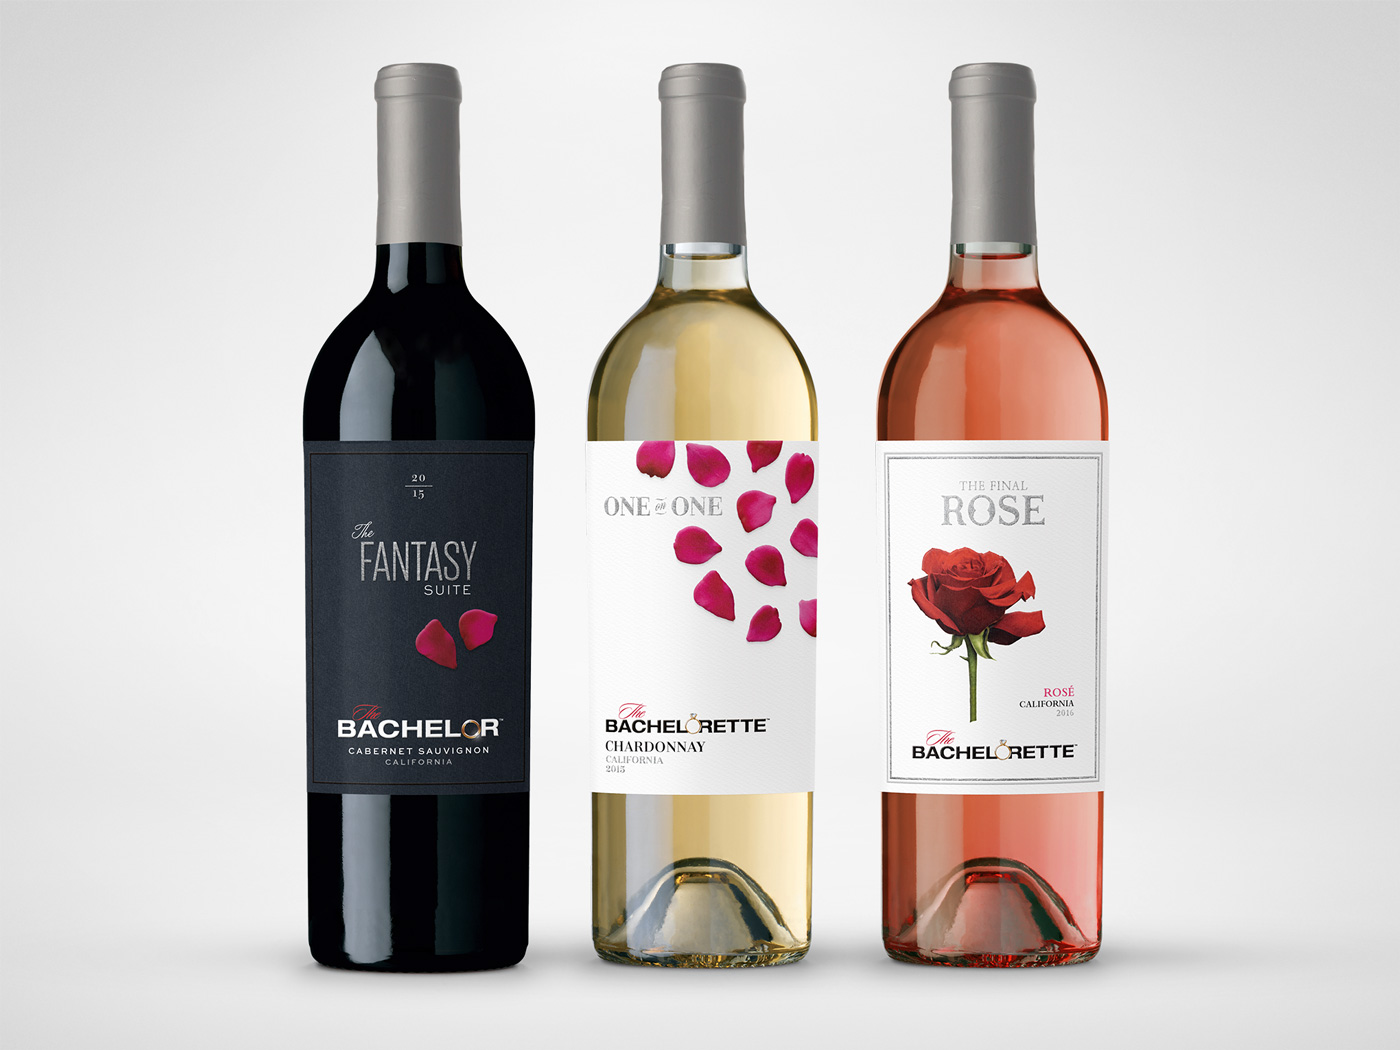 The Bachelor Wines Collection